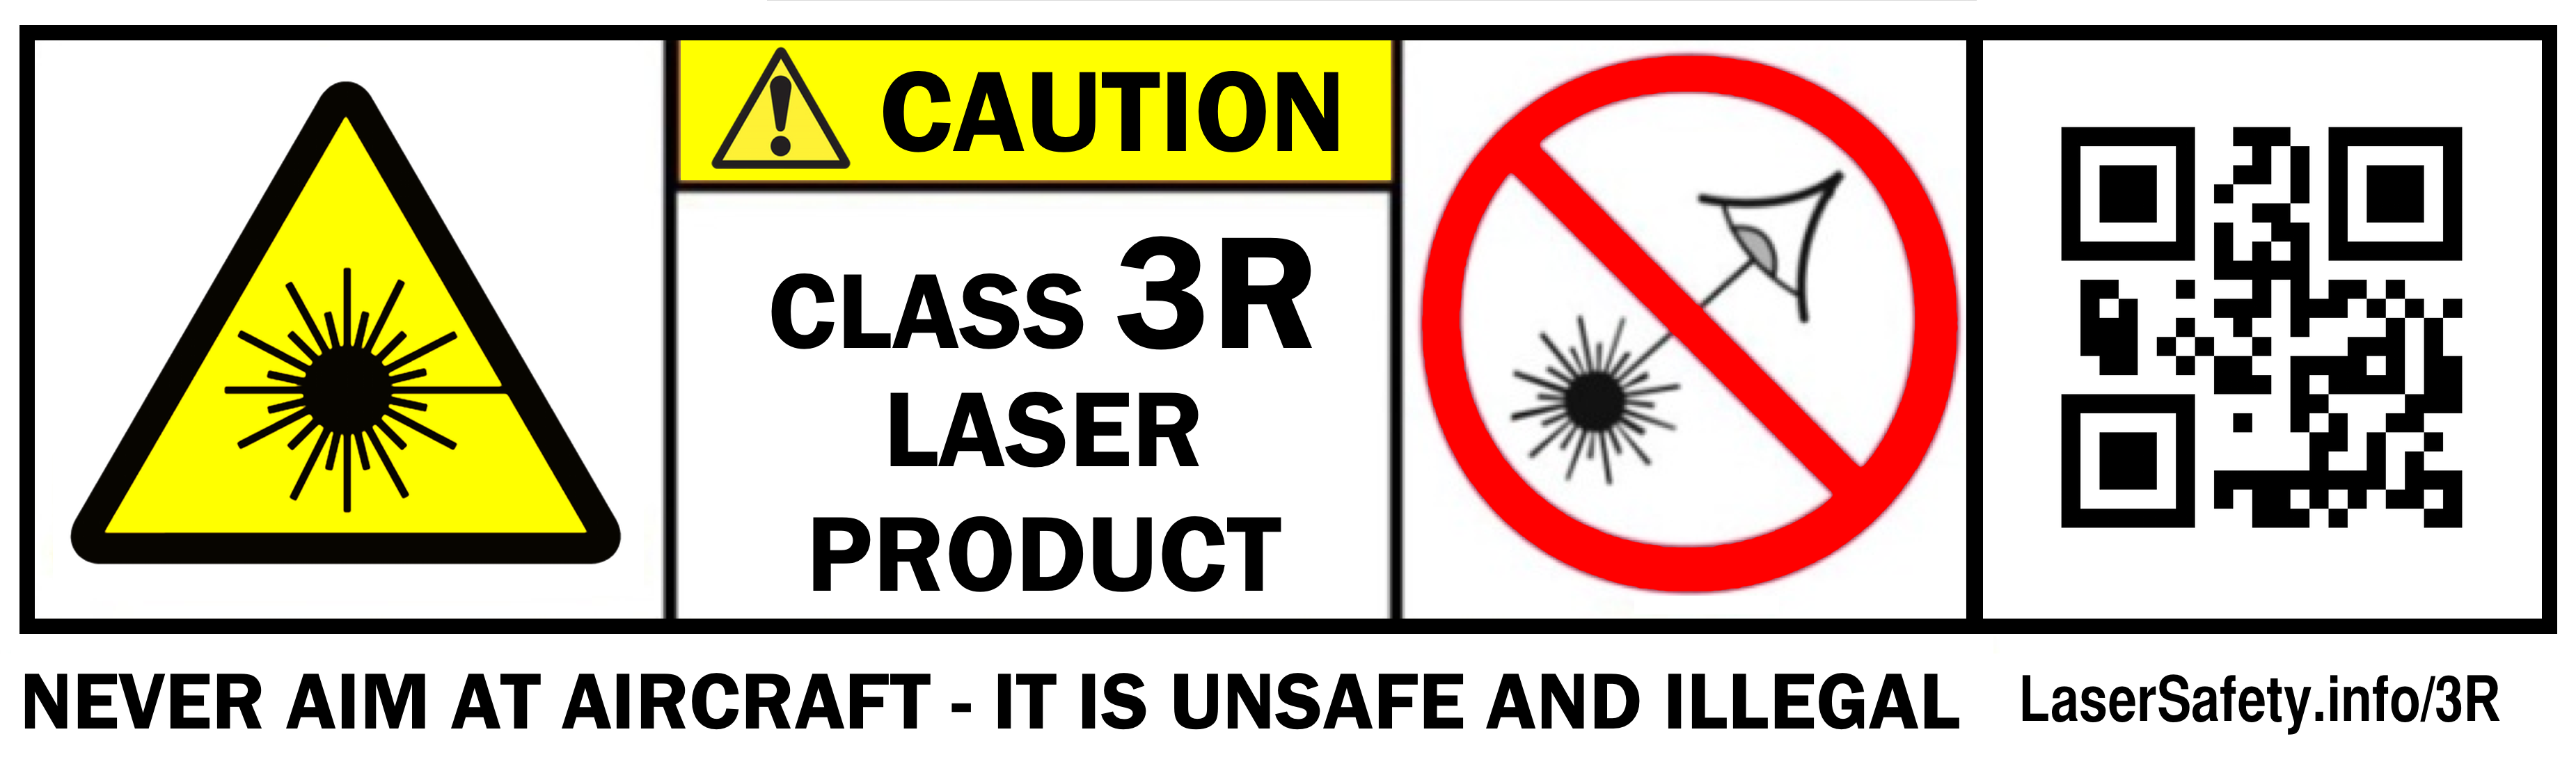 About Laser Safety Facts Laser Safety Facts